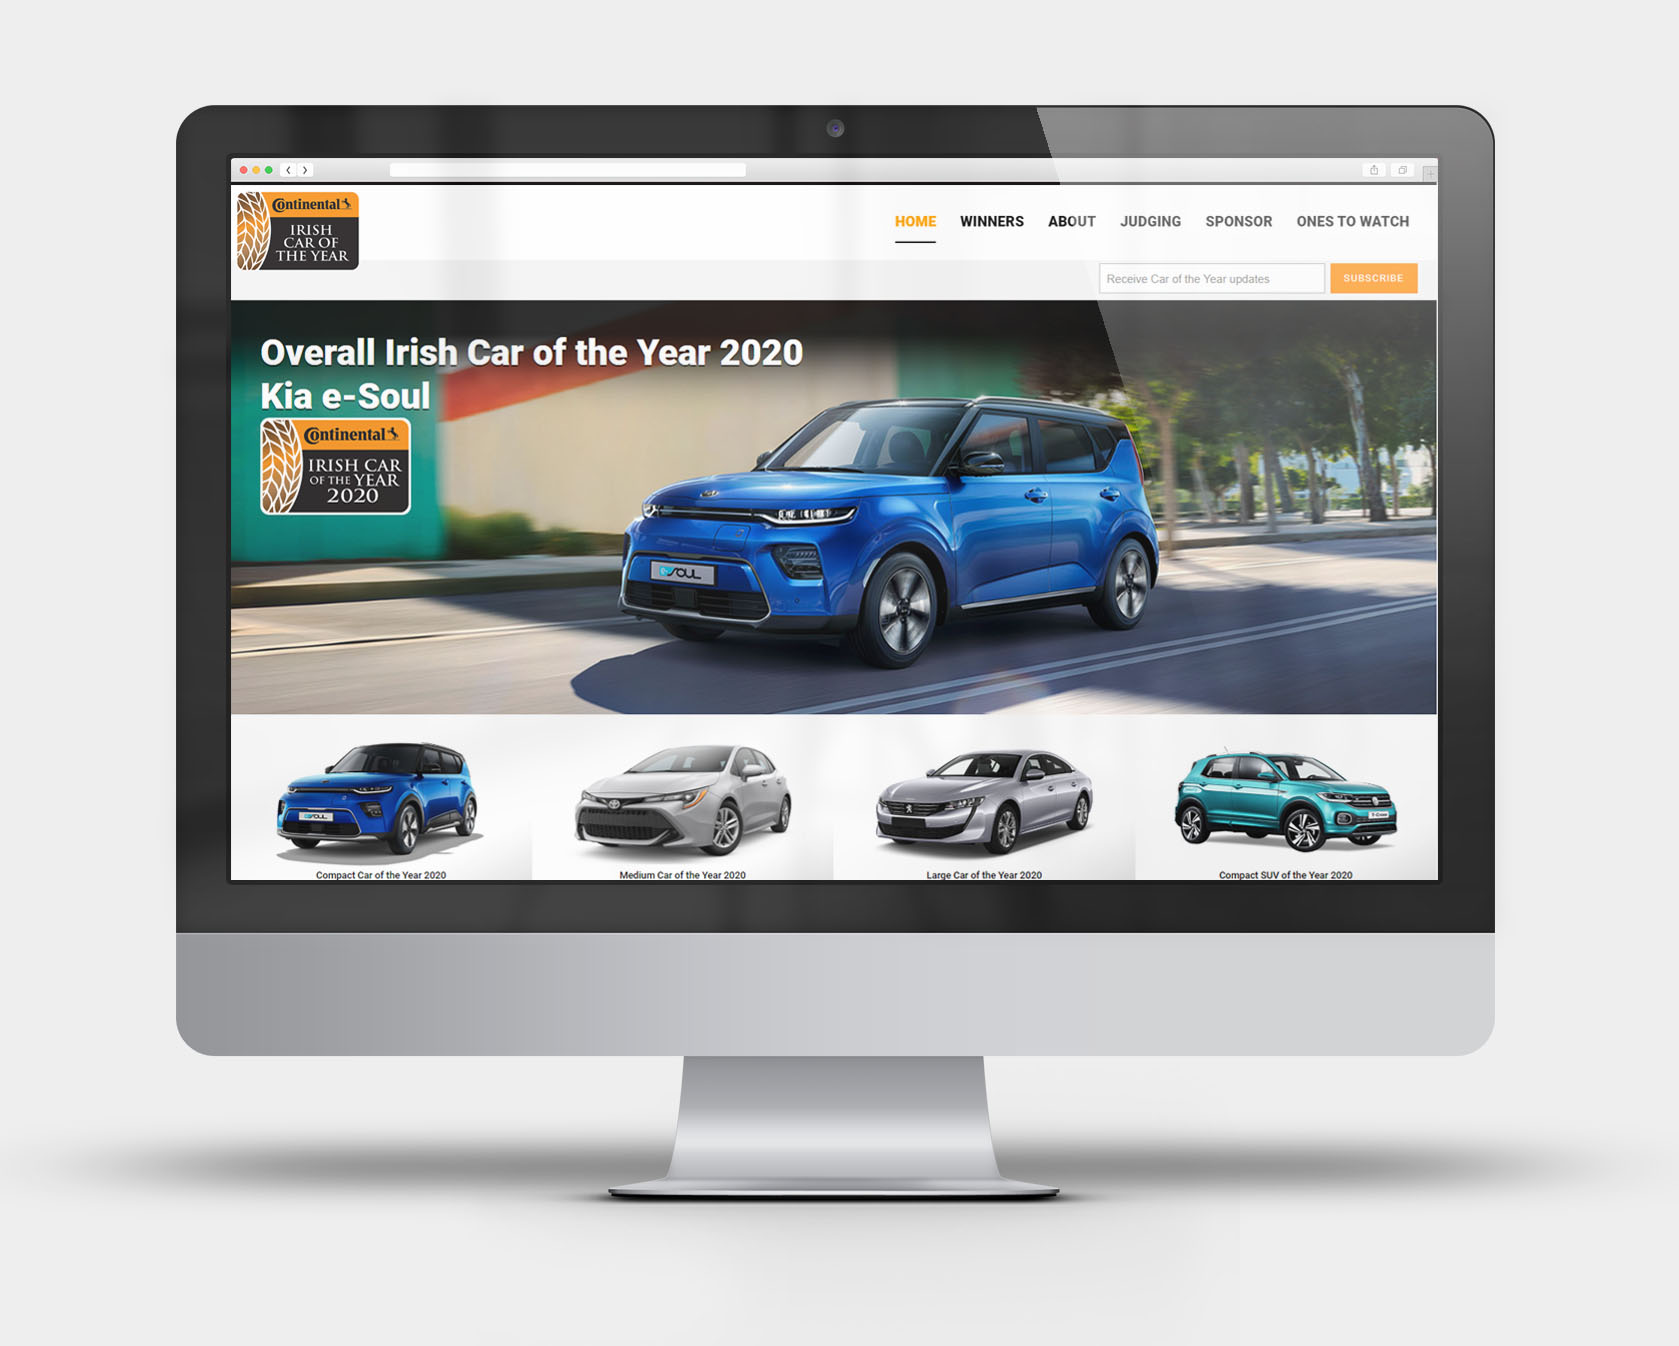 An example of one website we have created for the Irish Car of the Year that was updated live as the announcements were being made. The website was accompanied by a social media campaign that delivered timely information to readers. Caroftheyear.ie has been built and content-supported throughout the year by our in-house digital PR team.